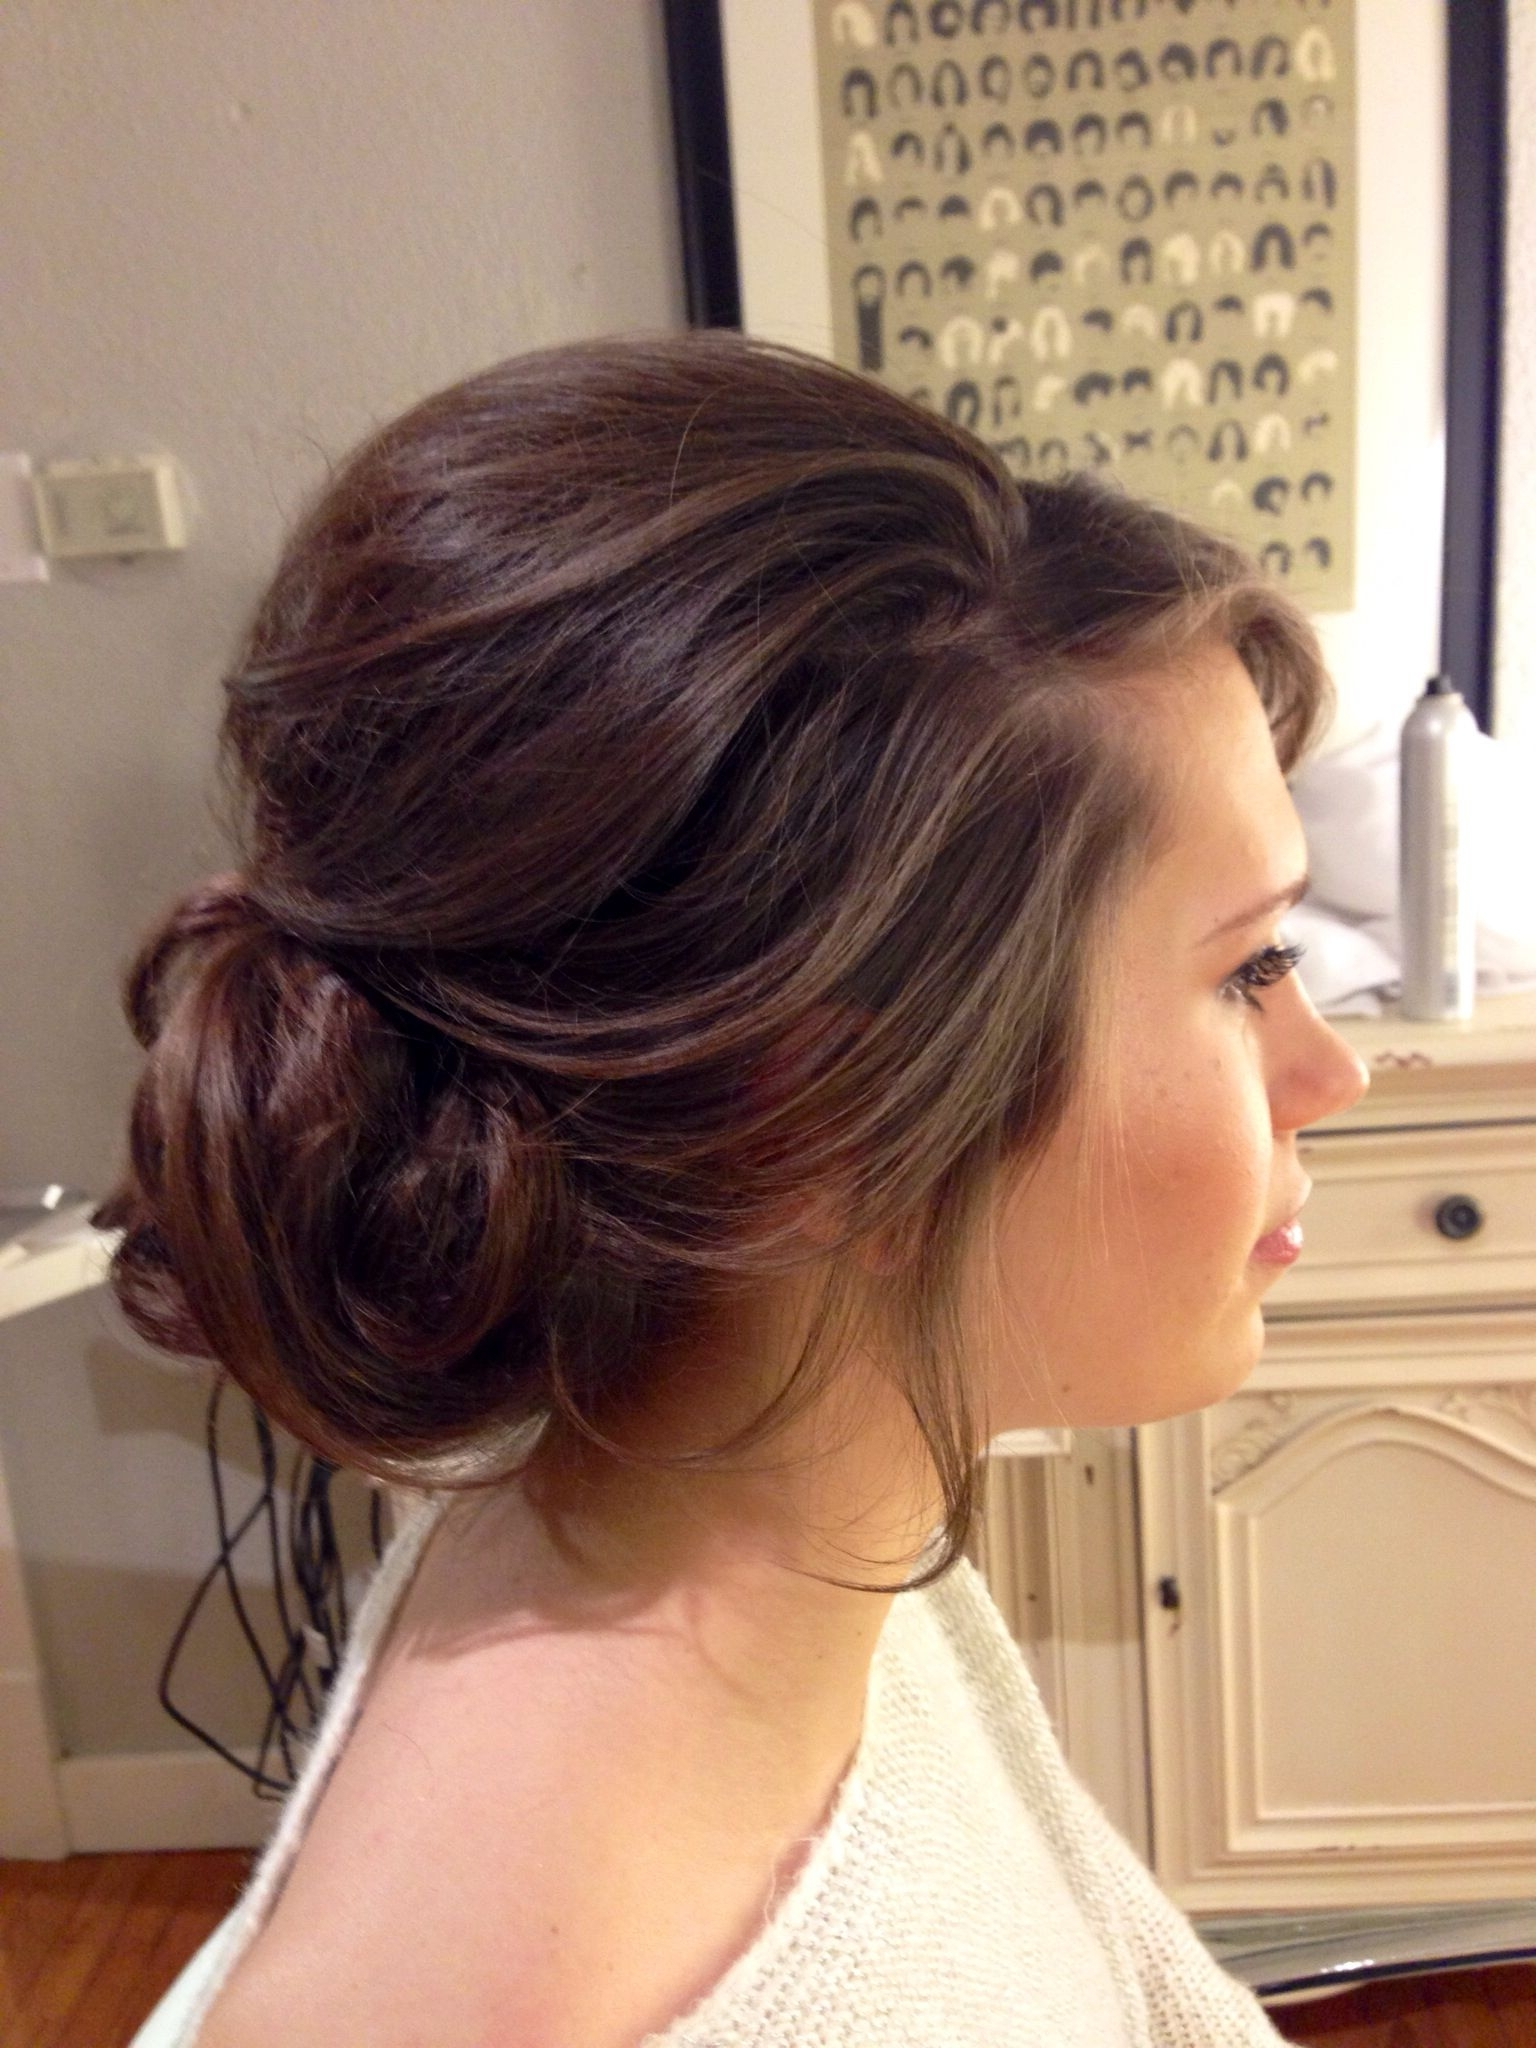 2019 Latest Loose Updo Hairstyles